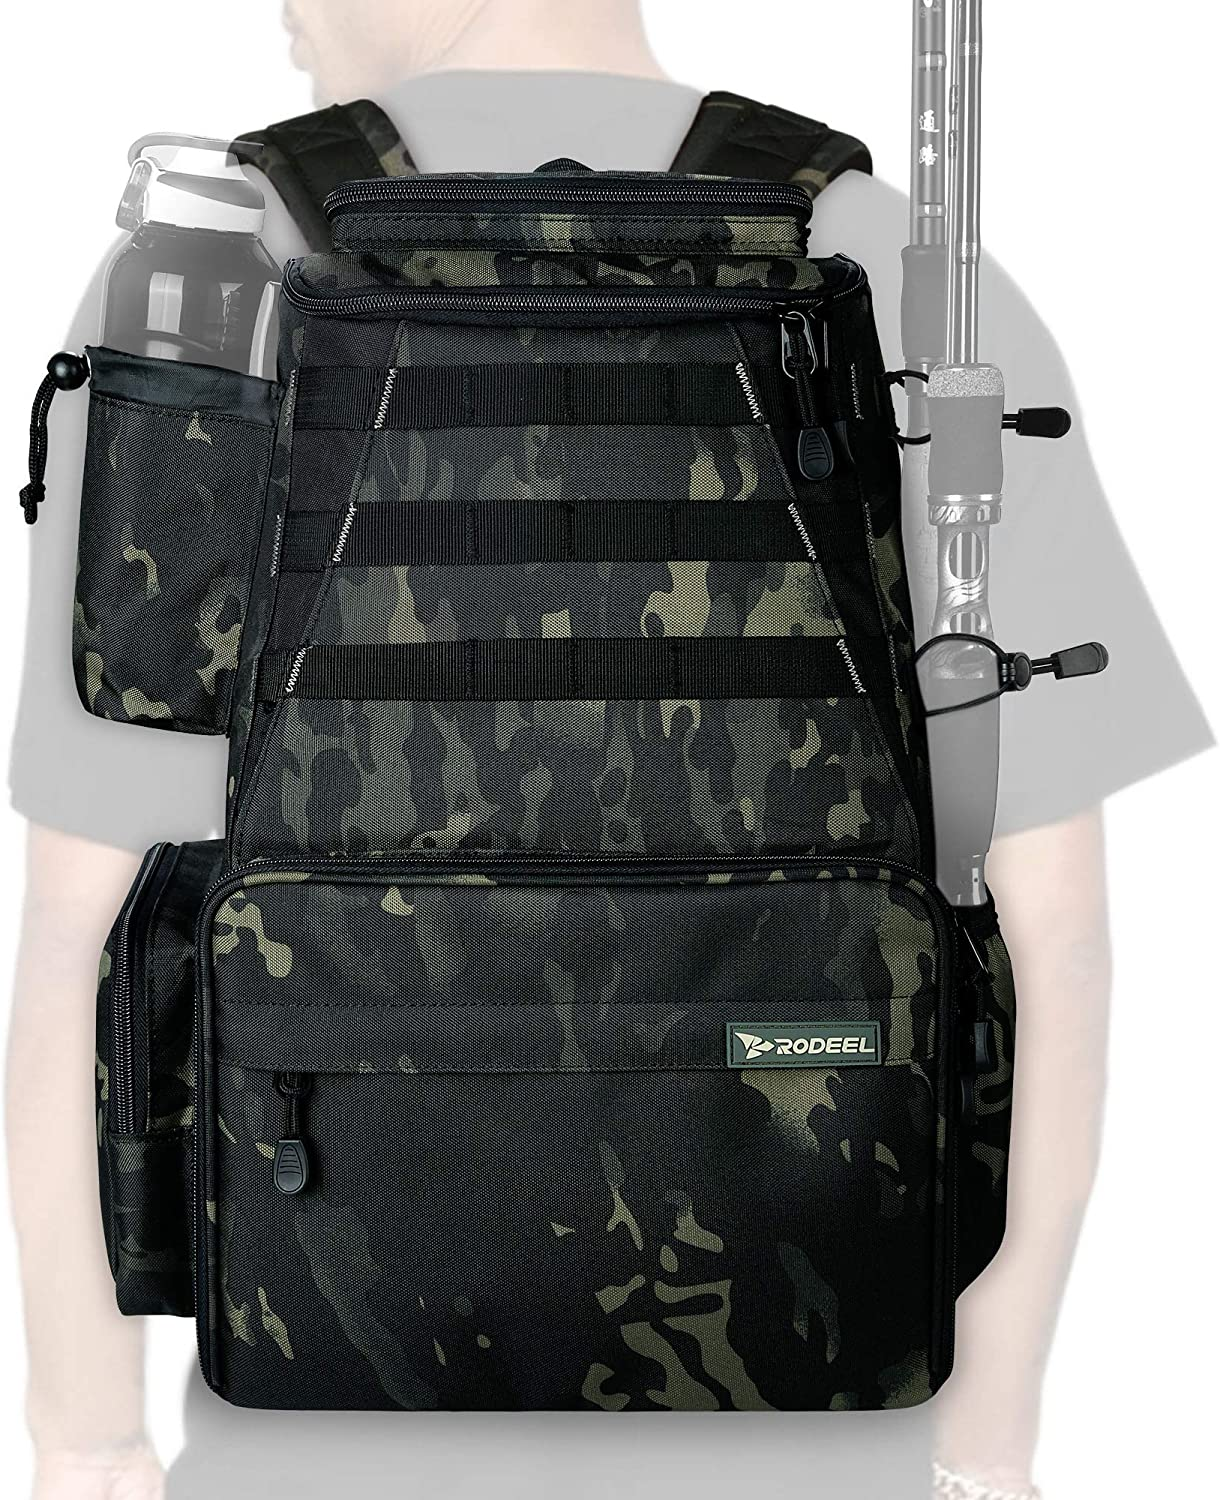 Rodeel Max 57% OFF Fishing Over item handling ☆ Tackle Backpack 2 Rod 4 Holders Without T